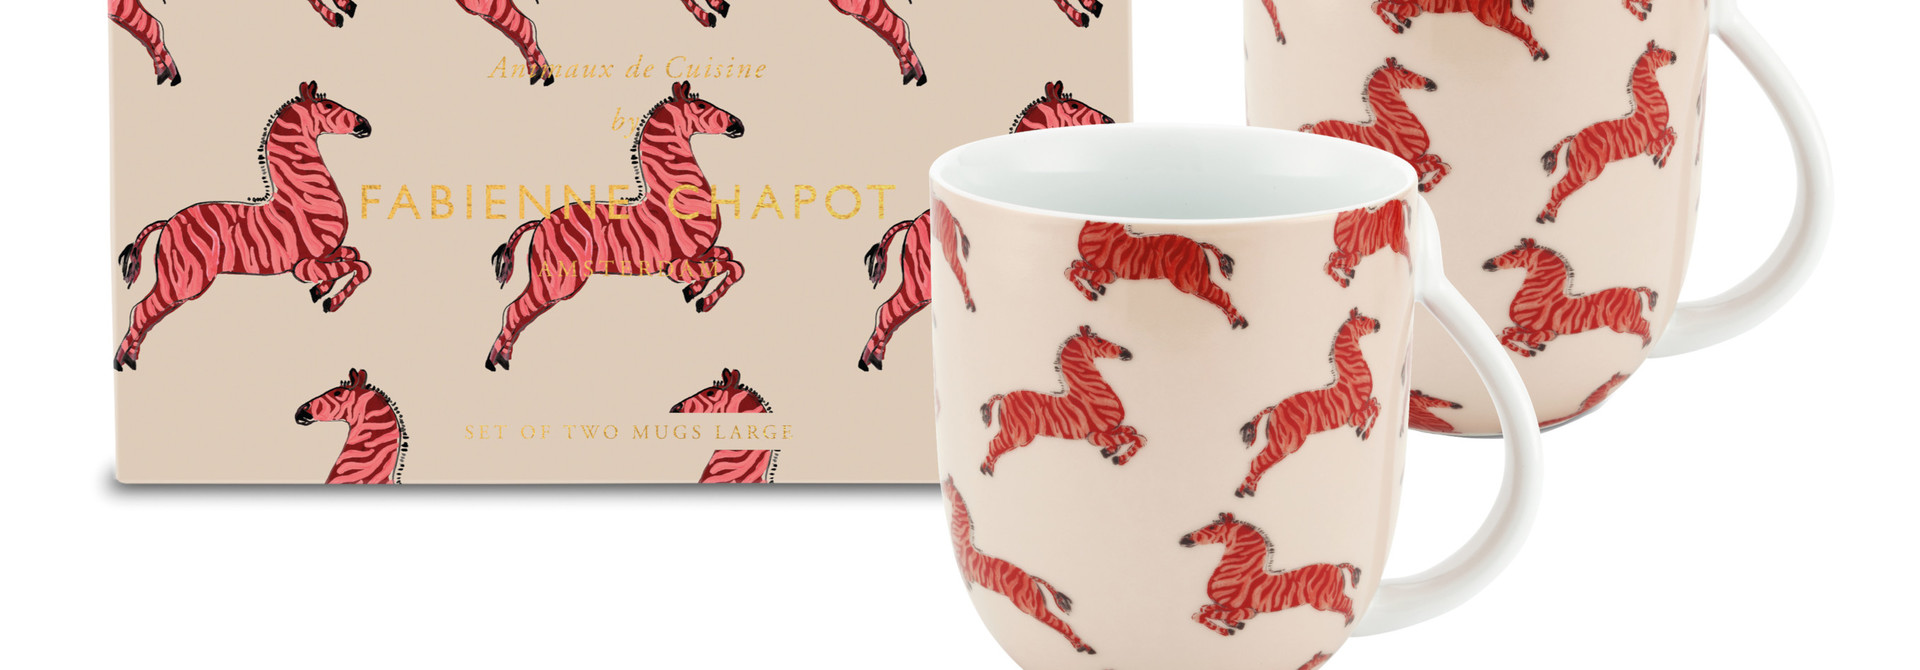 Set/2 Mugs Large Zebra